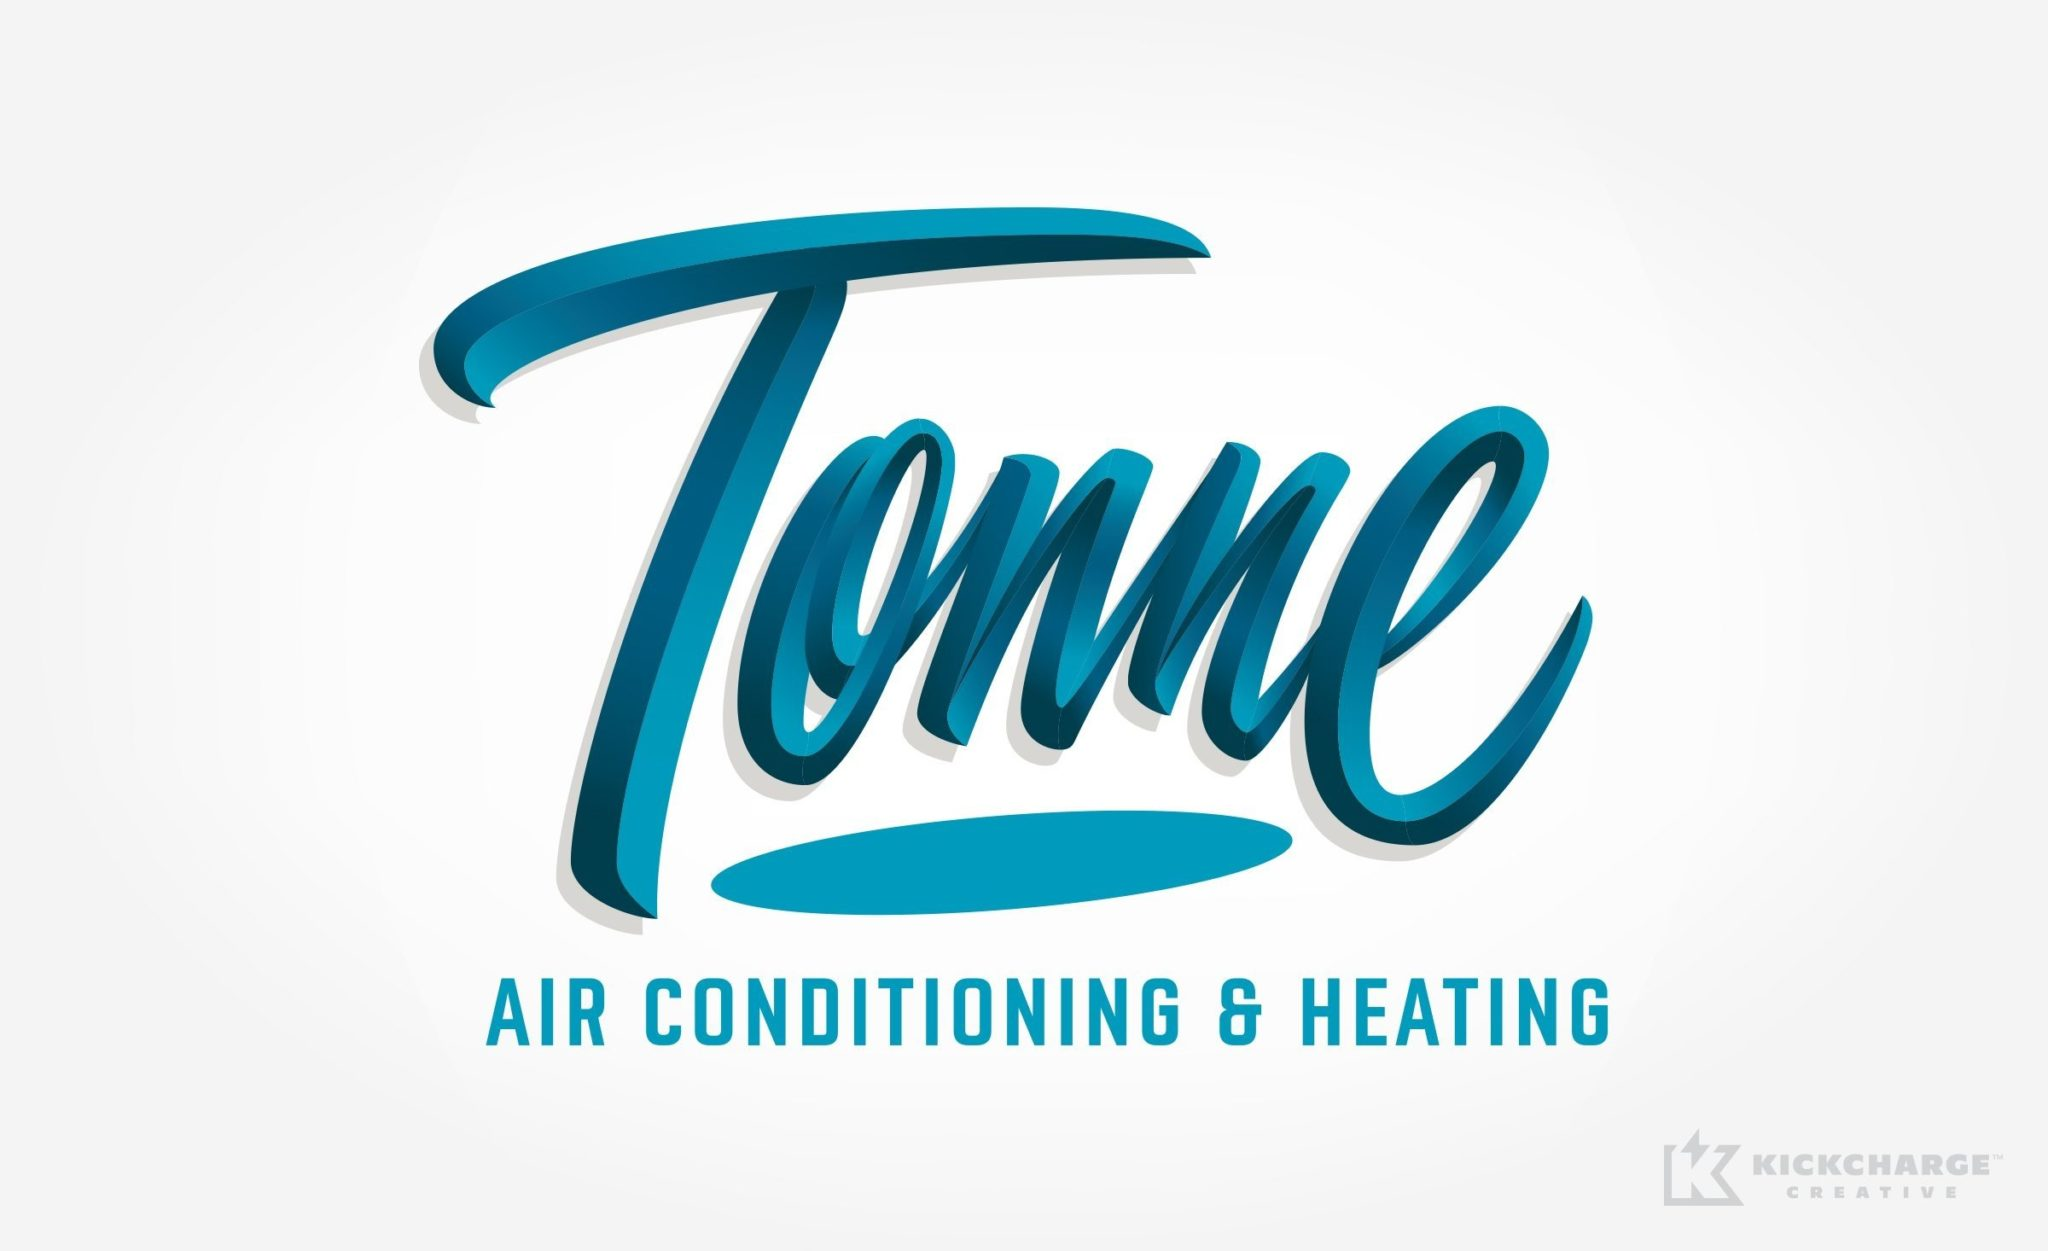 Tonne Air Conditioning & Heating